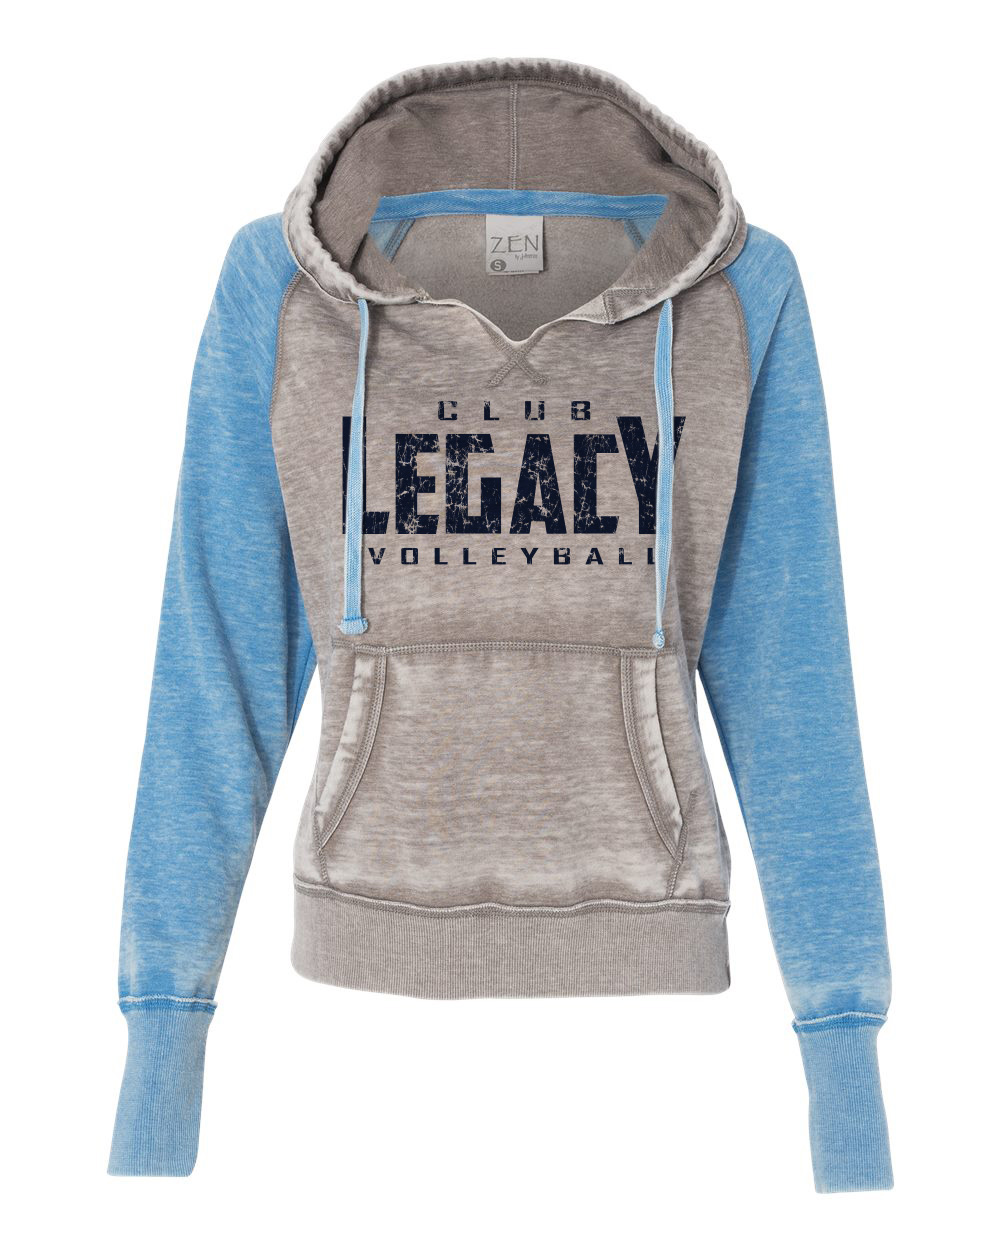 bb5a9c038 J. America - Women's Zen Fleece Raglan Hooded Sweatshirt